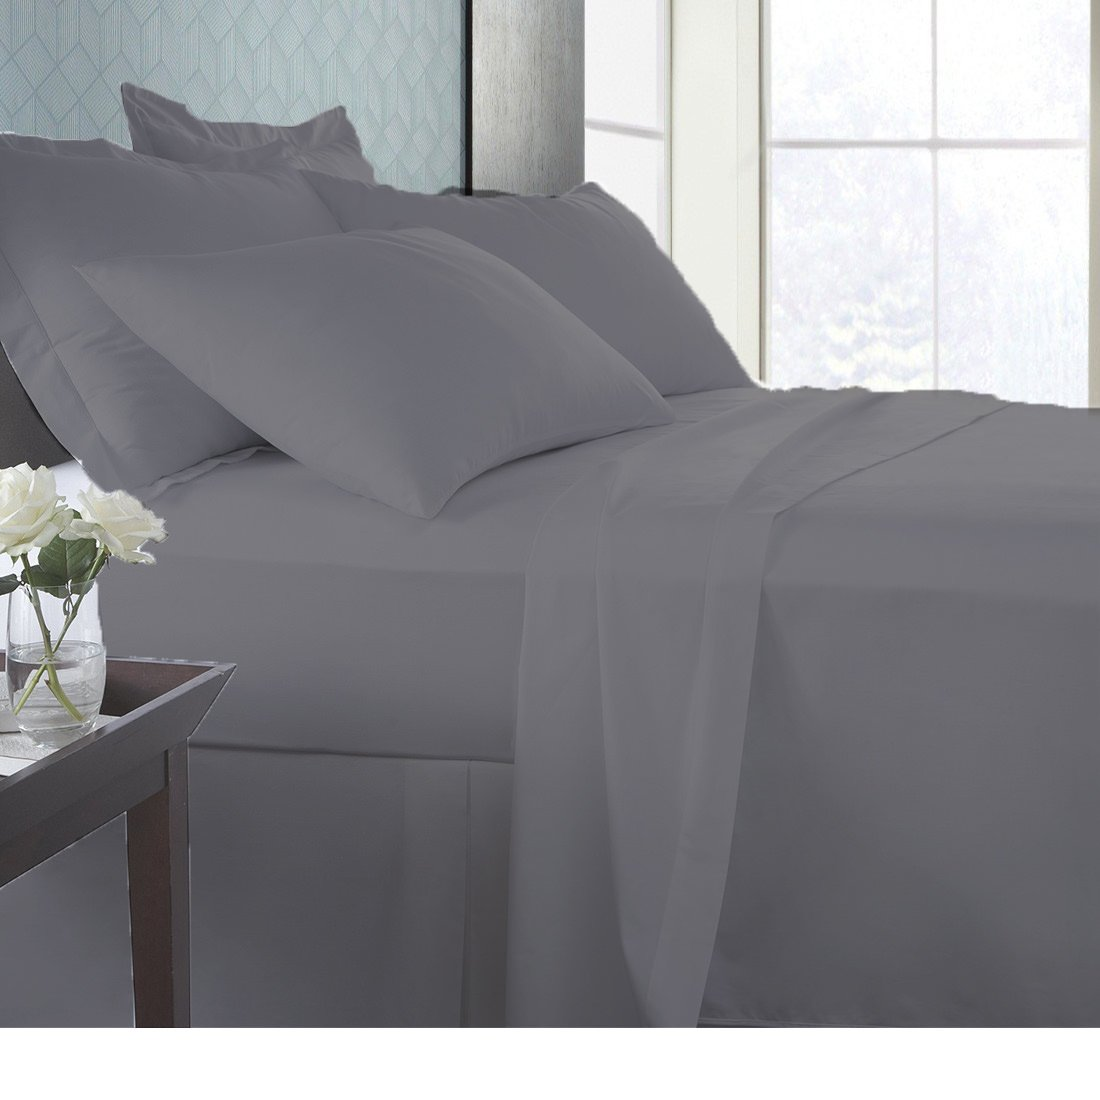 SPA Beddings Presents 4 PC Sheet Set 100% Egyptian cotton 600 Thread Count Premium Sheet Set, Luxurious Feel Italian Finish Comfort Sheet Set Comes with 19'' Deep Pocket Cal-King Elephant Grey by SPA Beddings (Image #1)